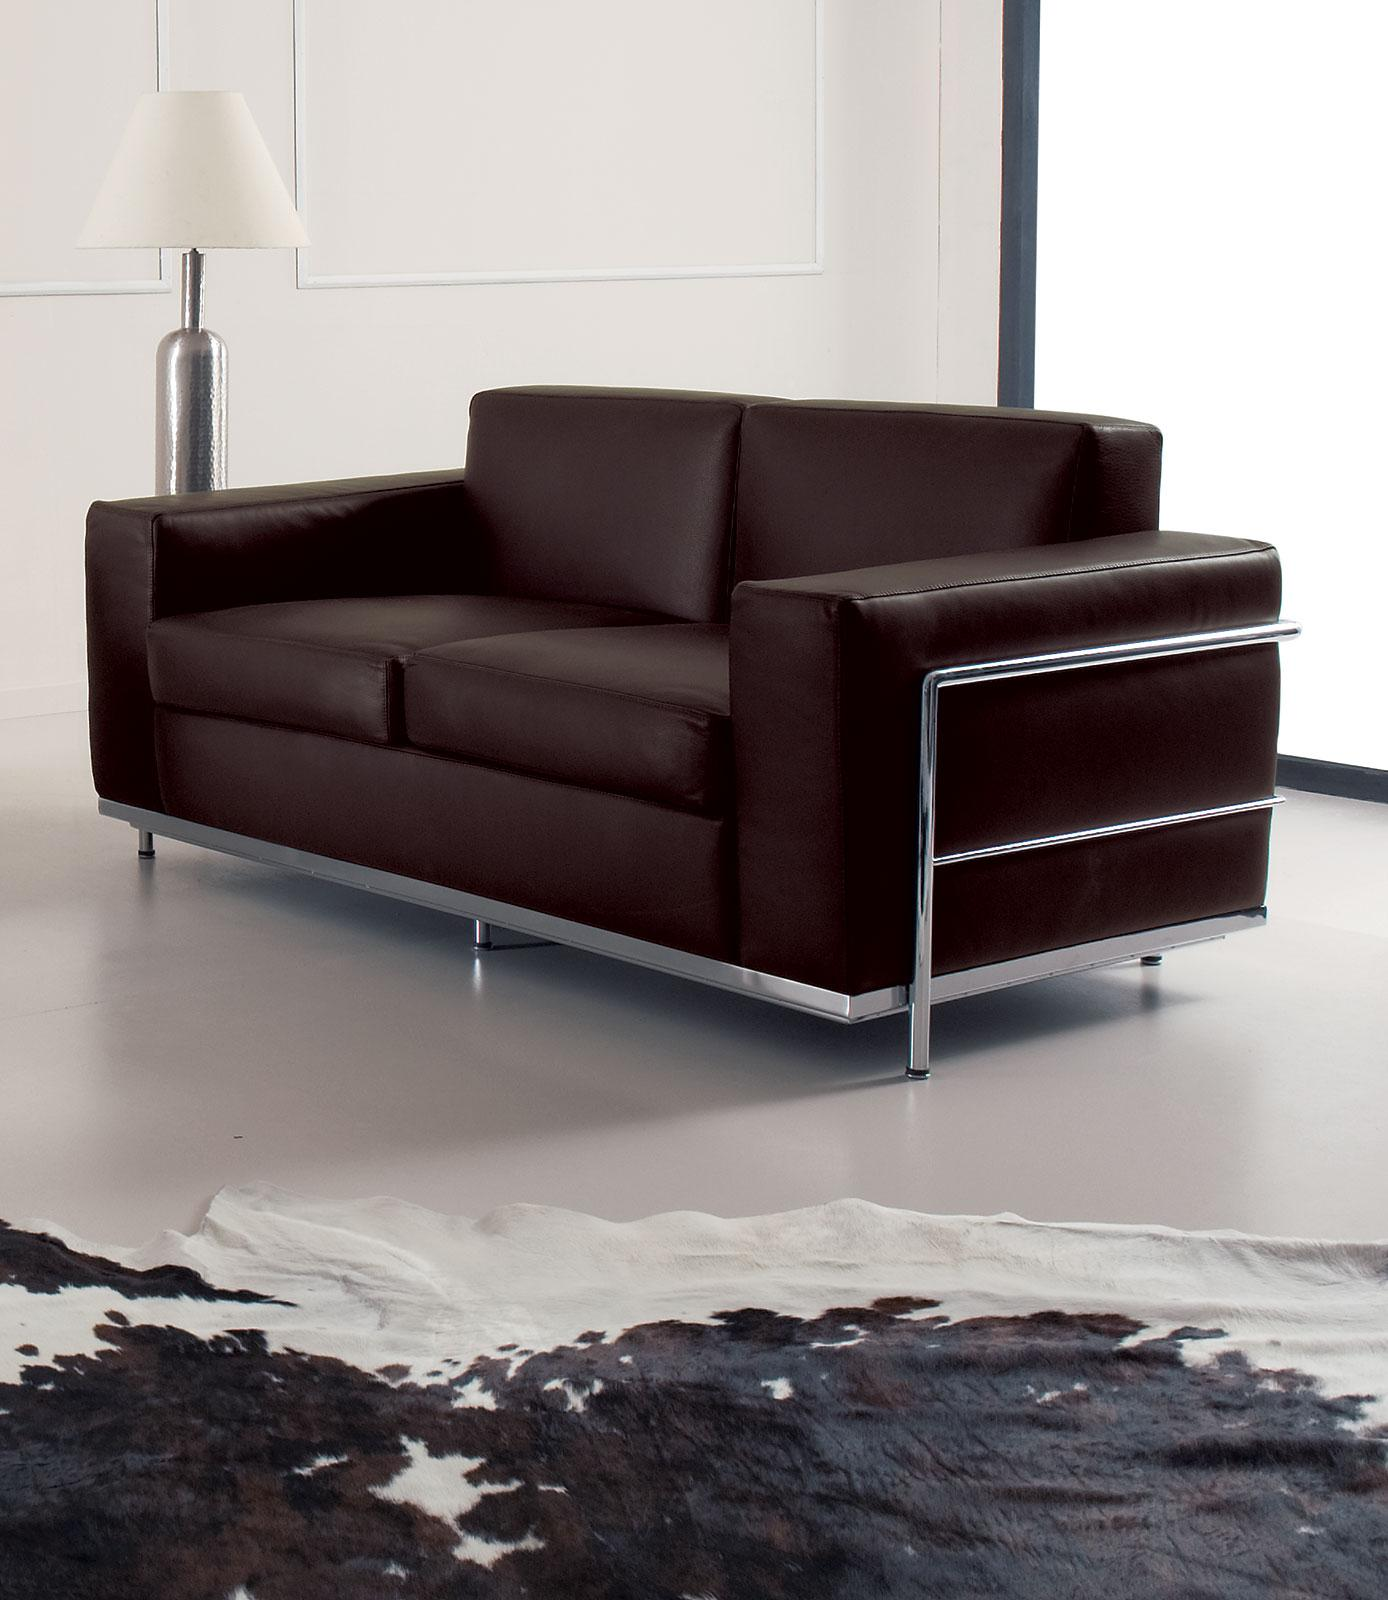 Cook 2 Seater Modern Leather Sofa